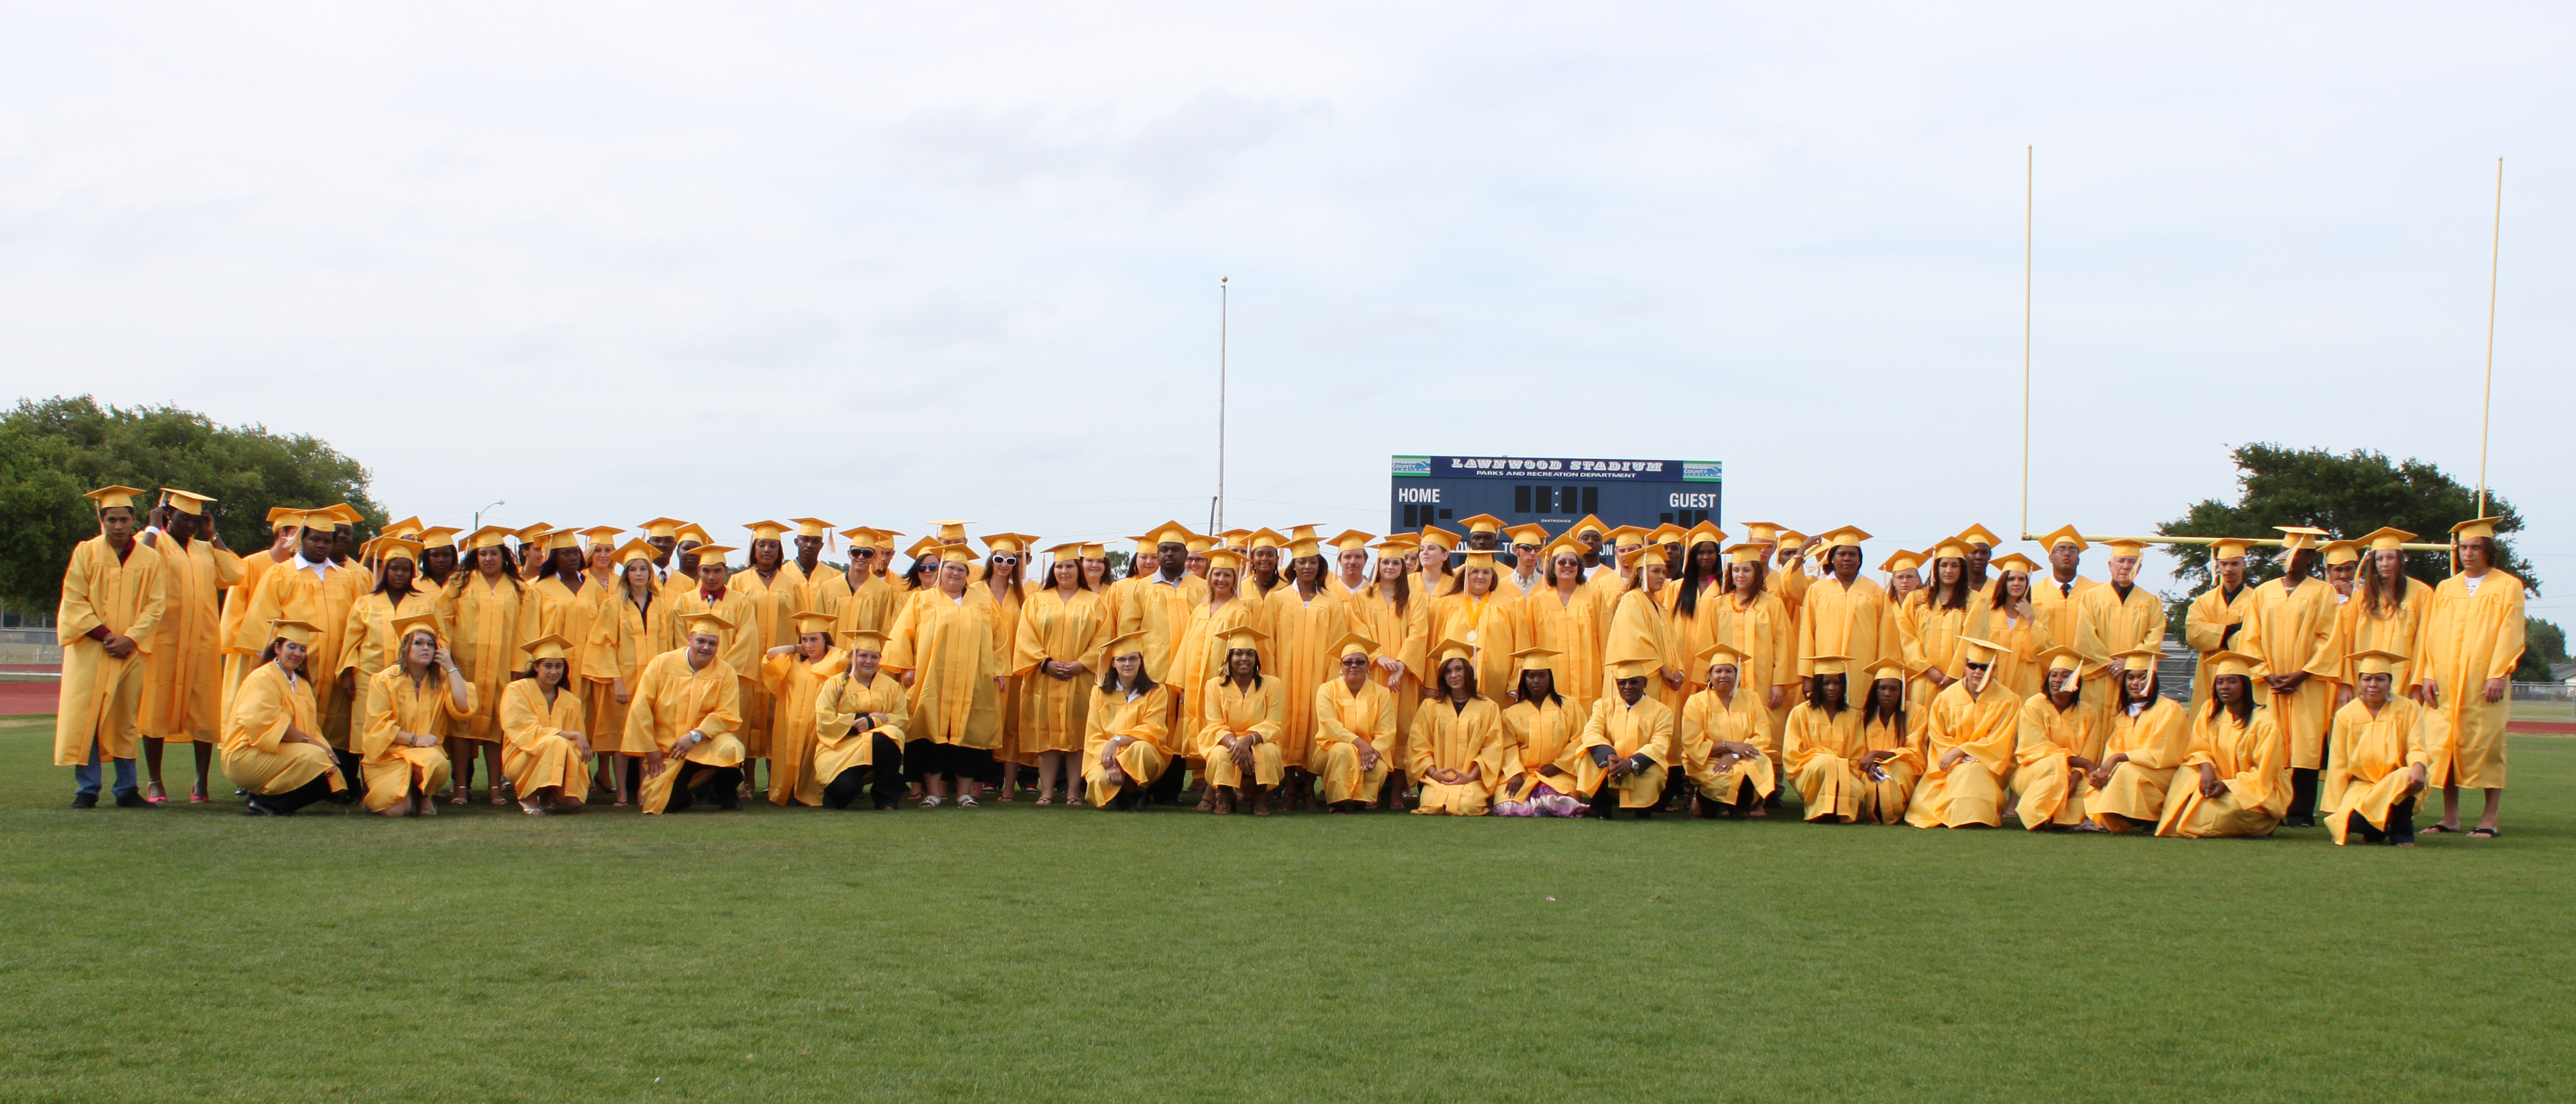 St. James Academy Graduating Class of 2009-2010